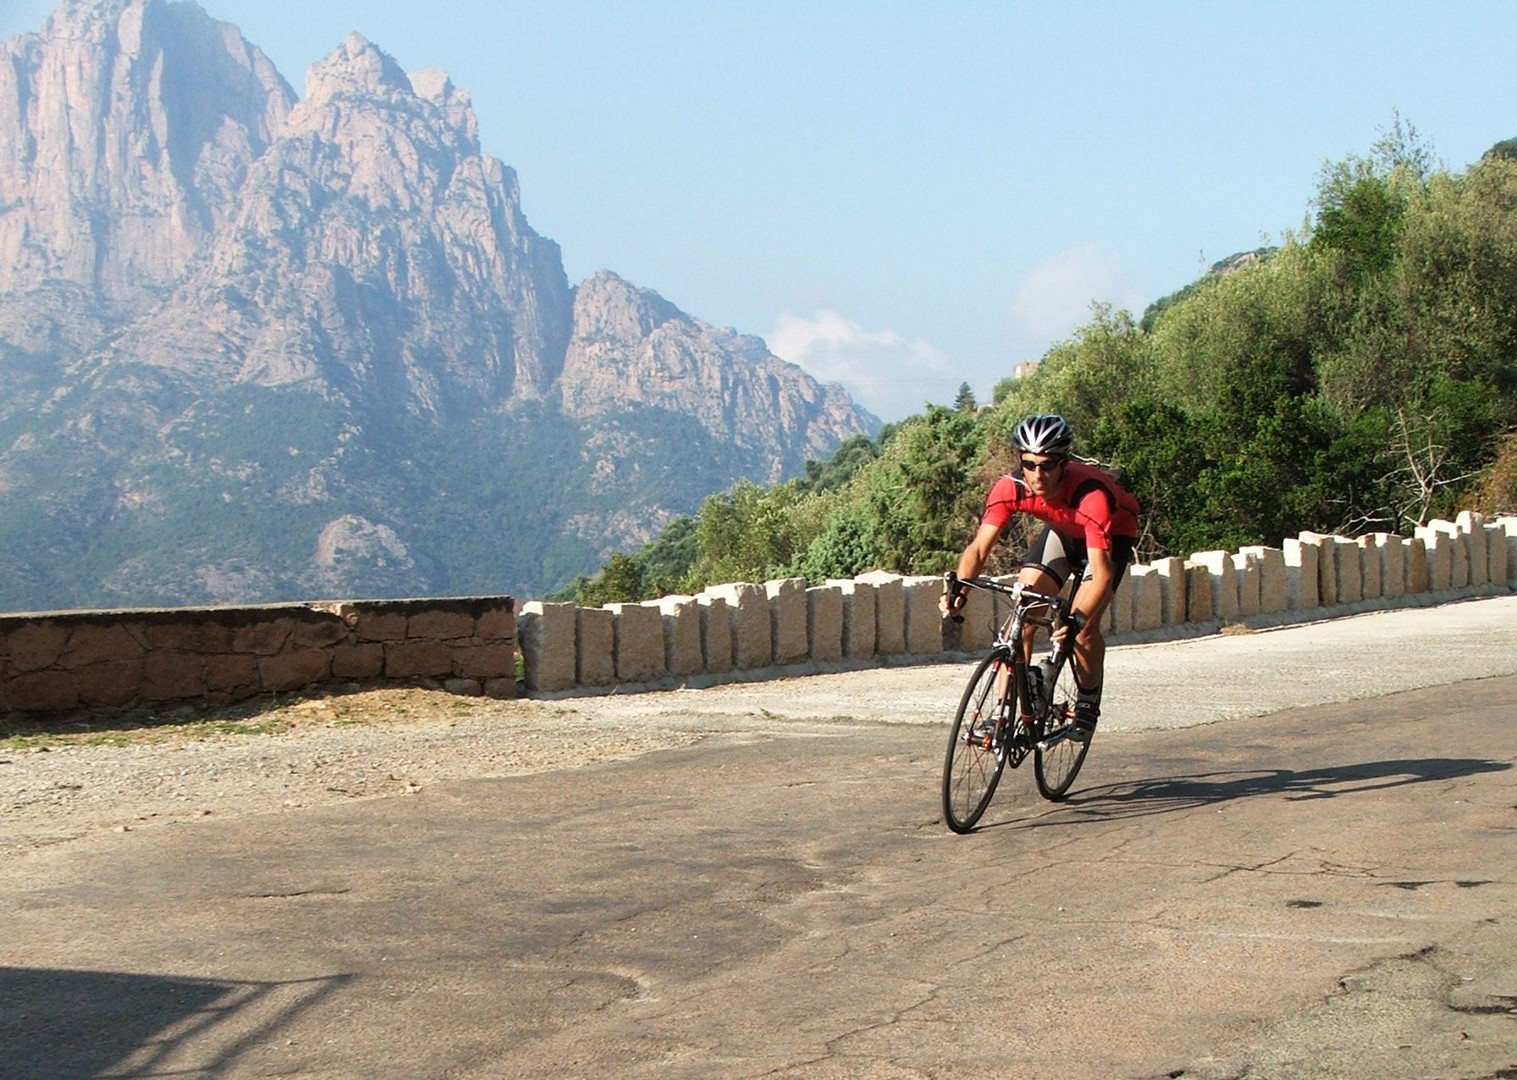 france-corsica-the-beautiful-isle-guided-road-cycling-holiday.jpg - France - Corsica - The Beautiful Isle - Guided Road Cycling Holiday - Road Cycling